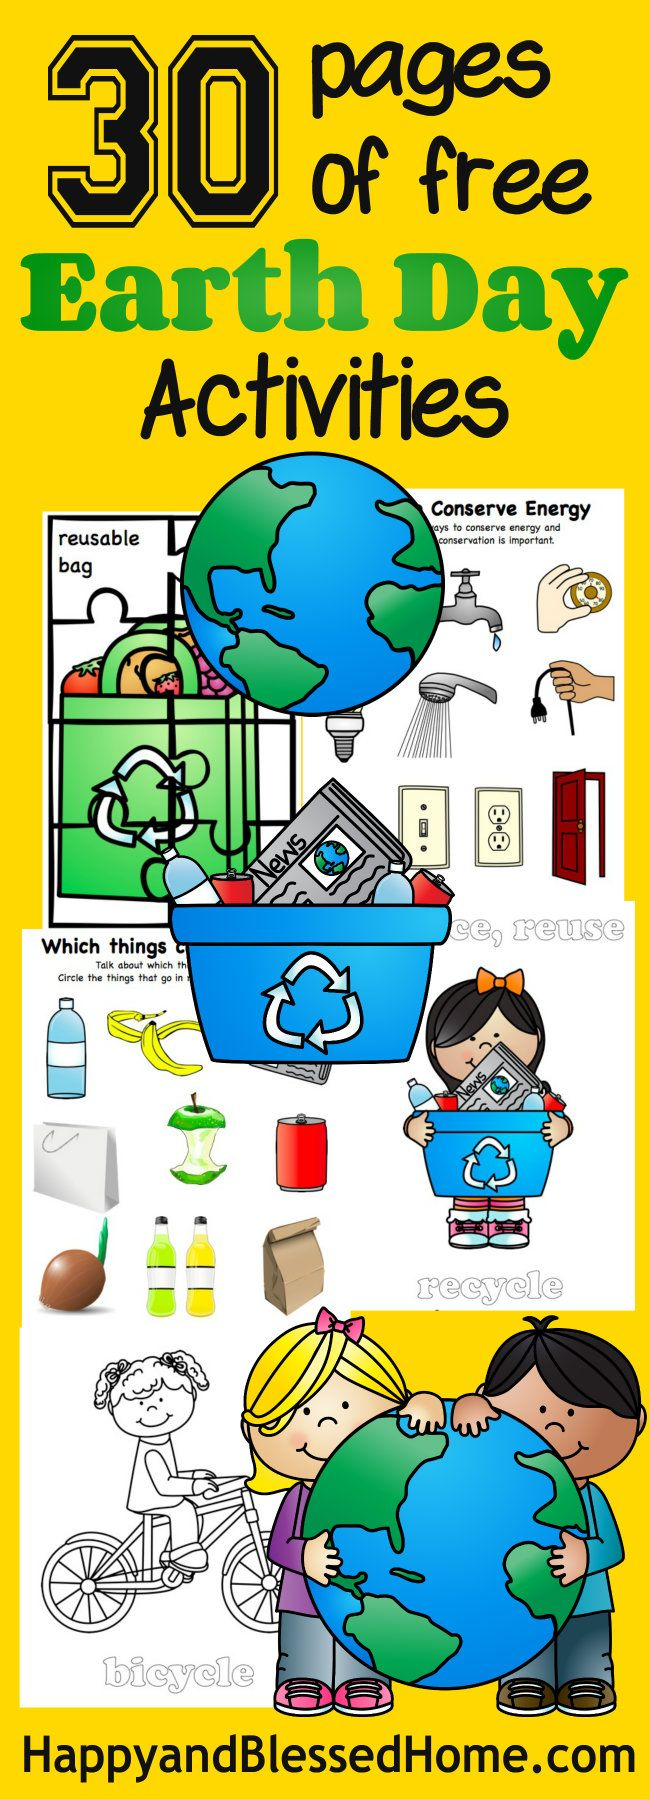 Earth Day Activity Pack from HappyandBlessedHome.com